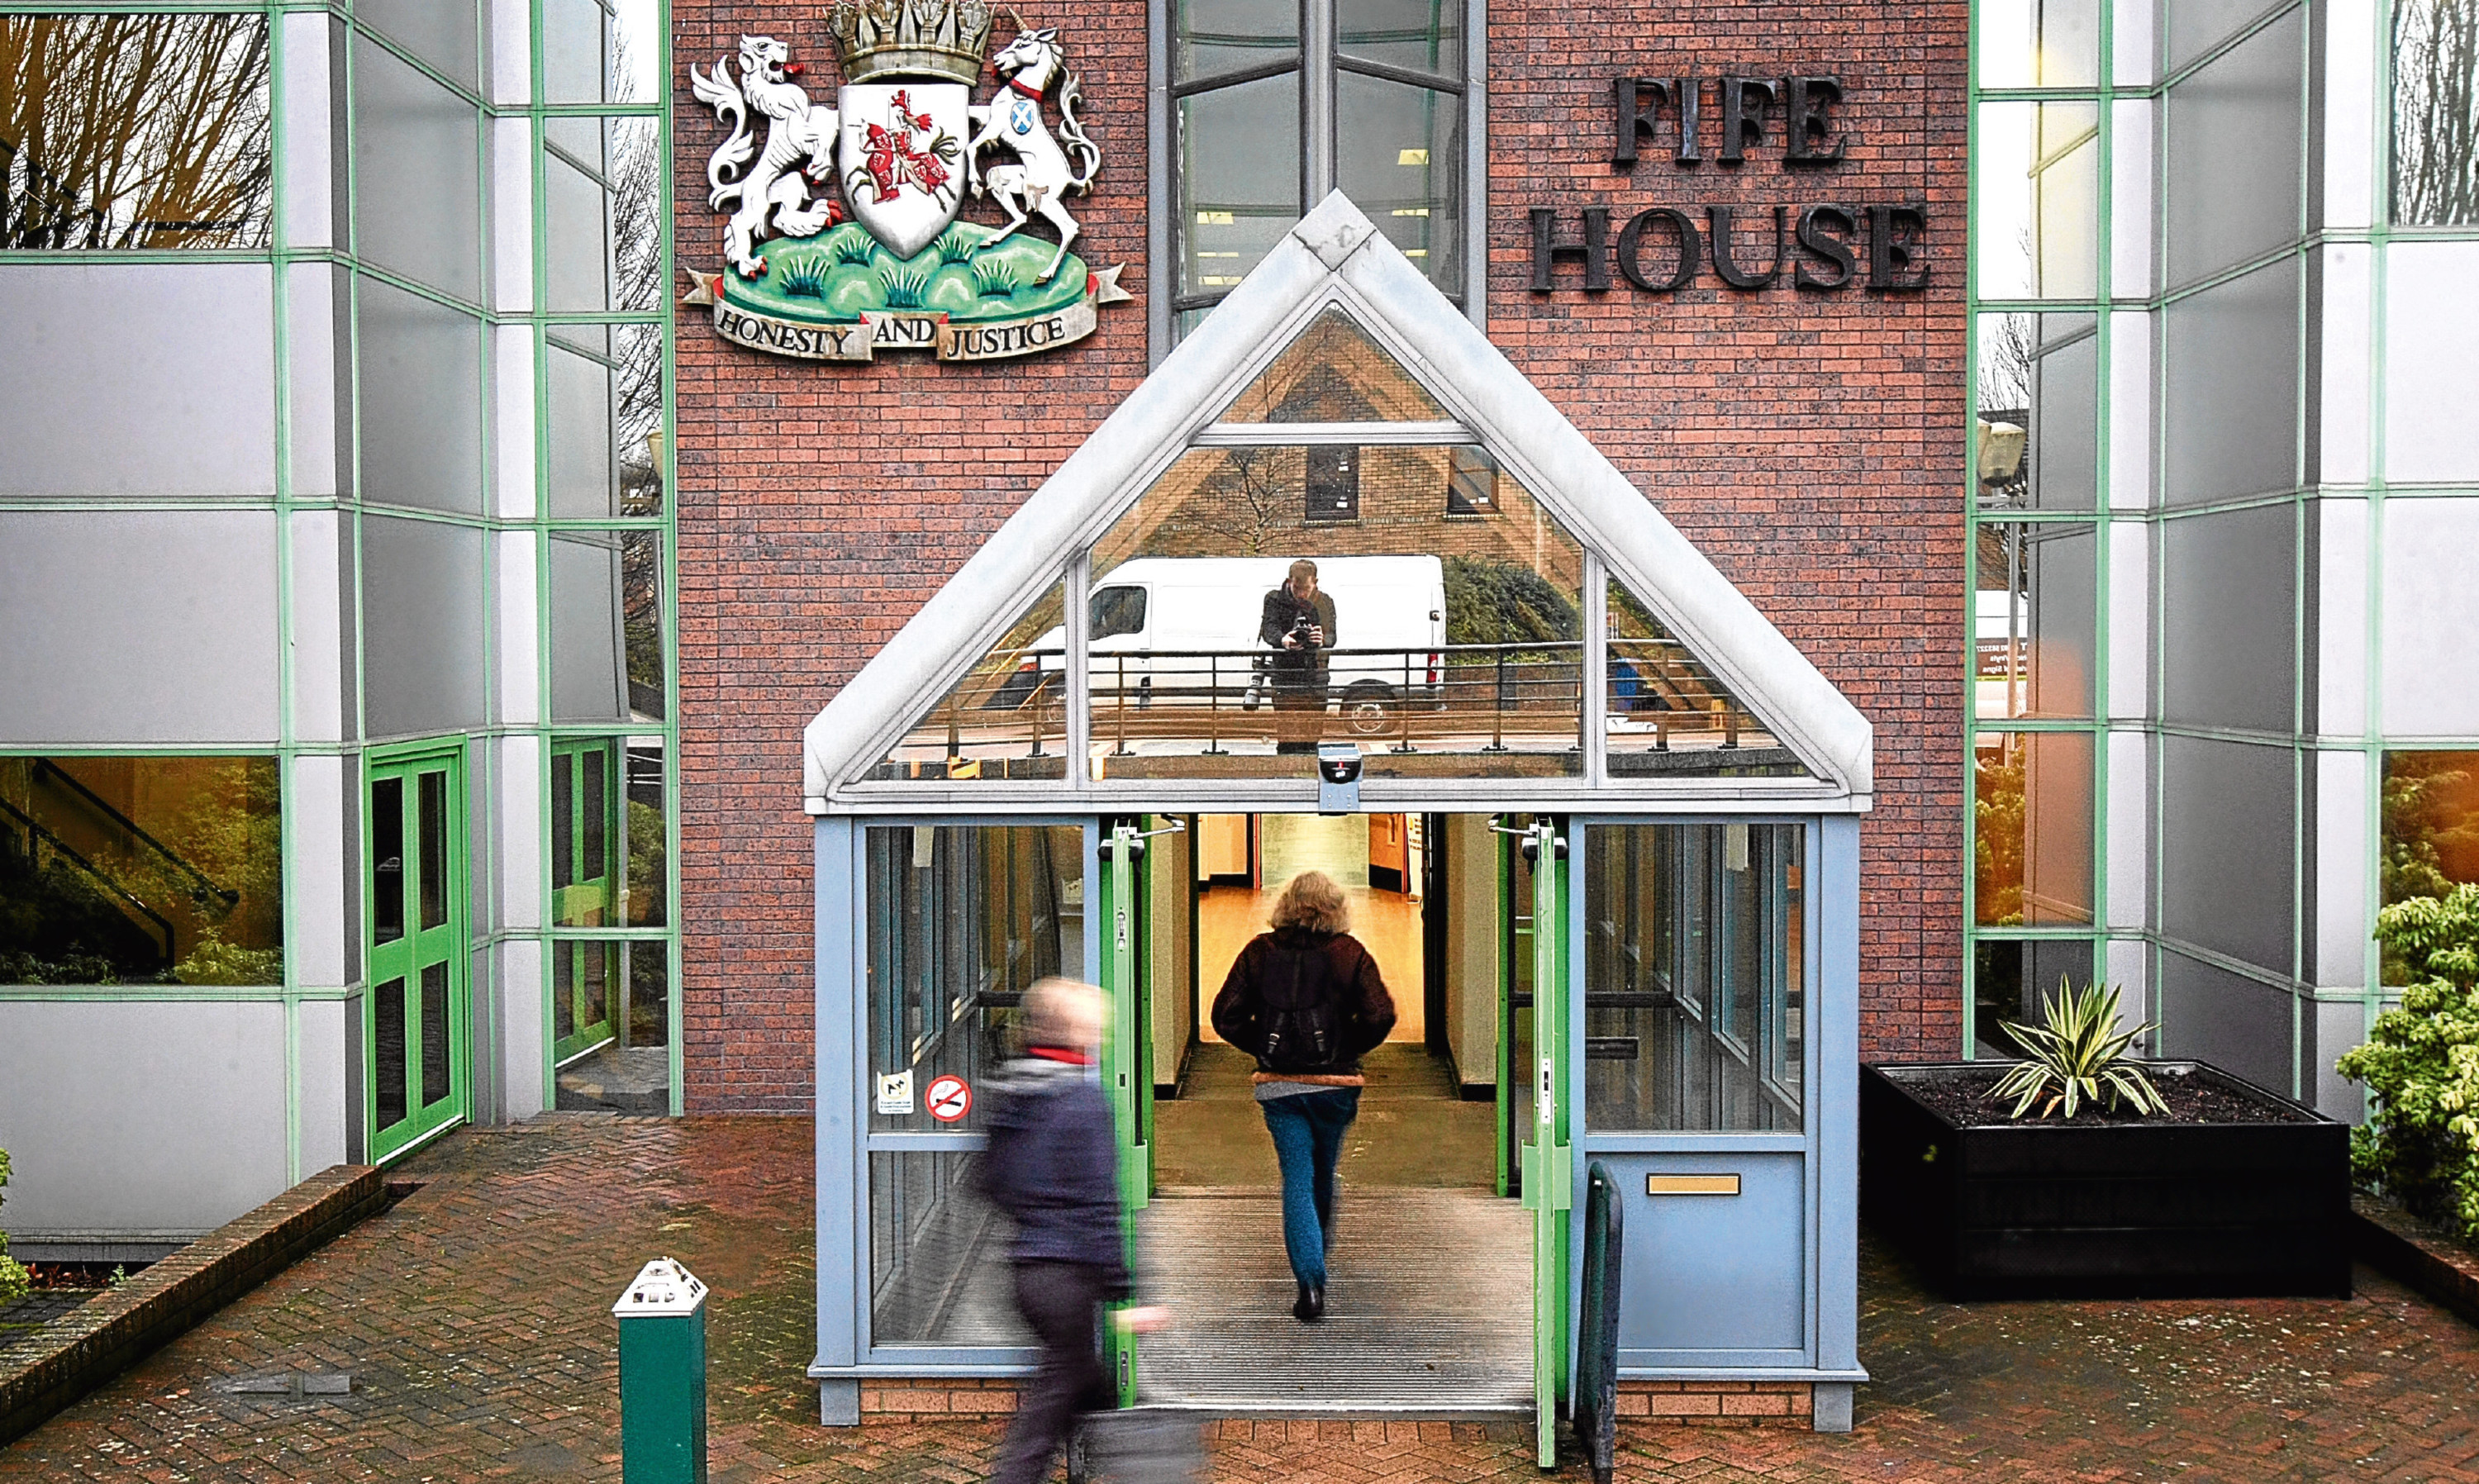 The plan will be considered at a meeting at Fife House.